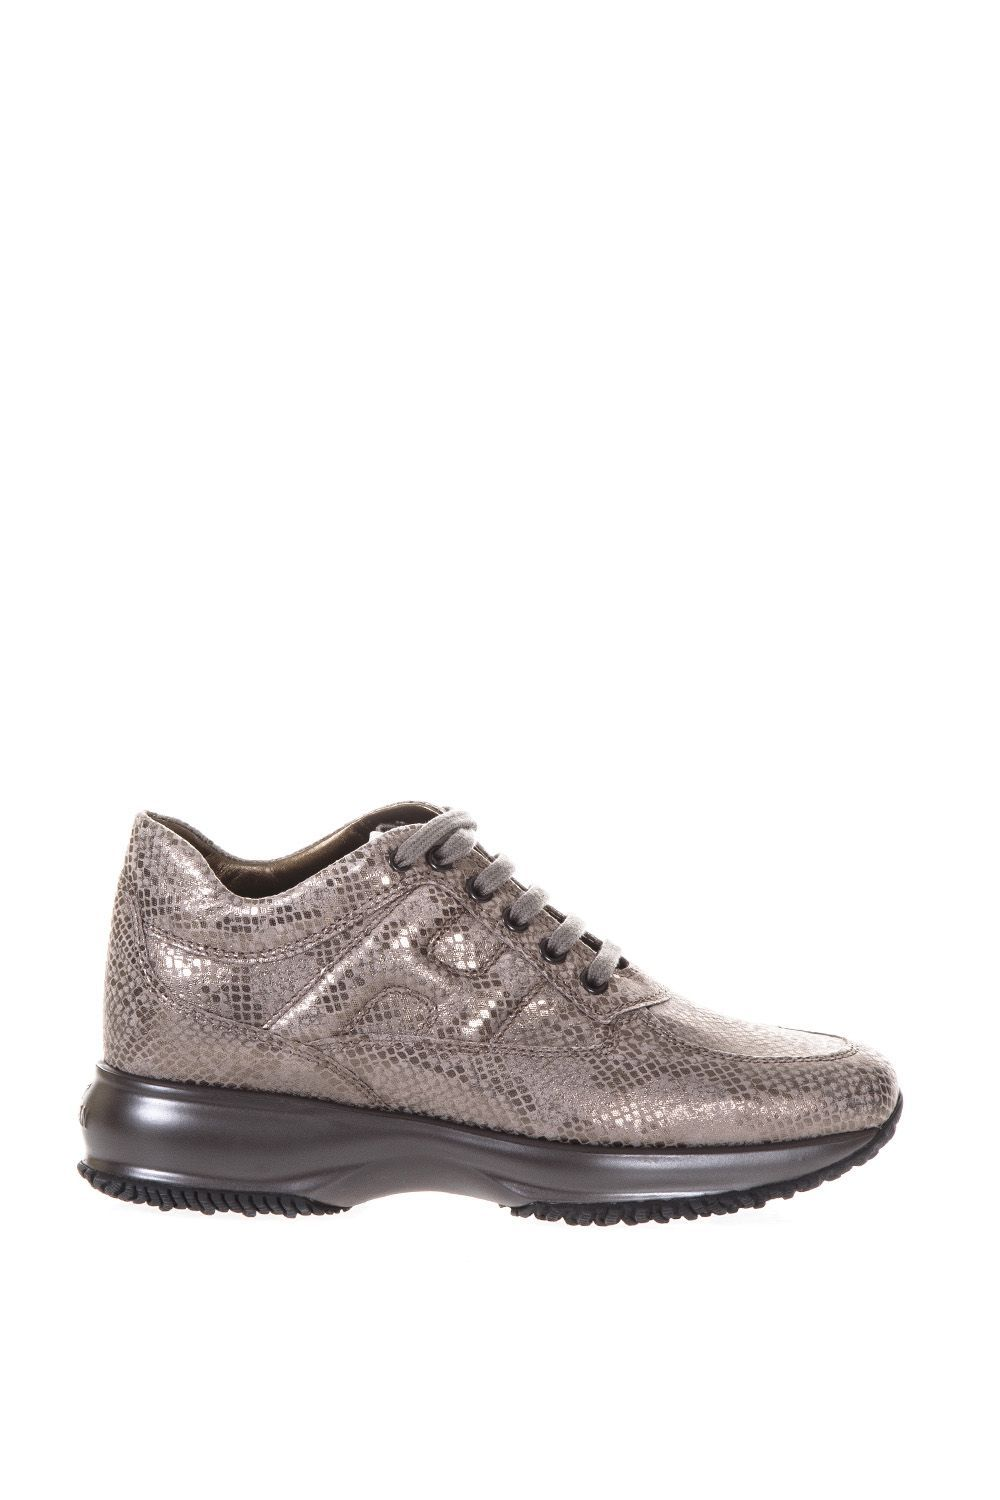 Reptile effect leather Interactive sneakers Hogan 7amwft